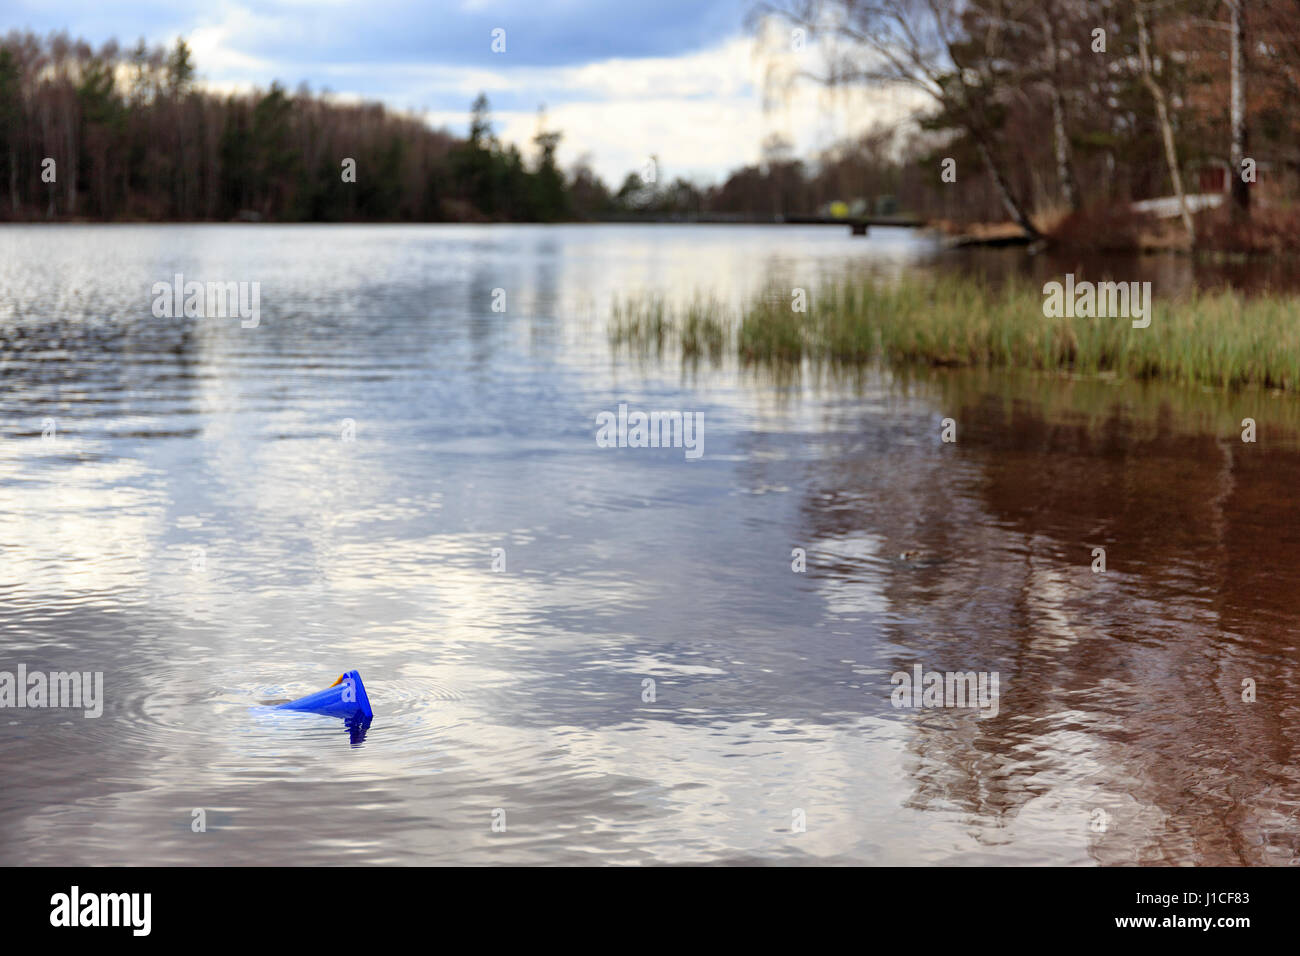 Blue sand bucket left behind in water by empty deserted lake beach  Model Release: No.  Property Release: No. - Stock Image